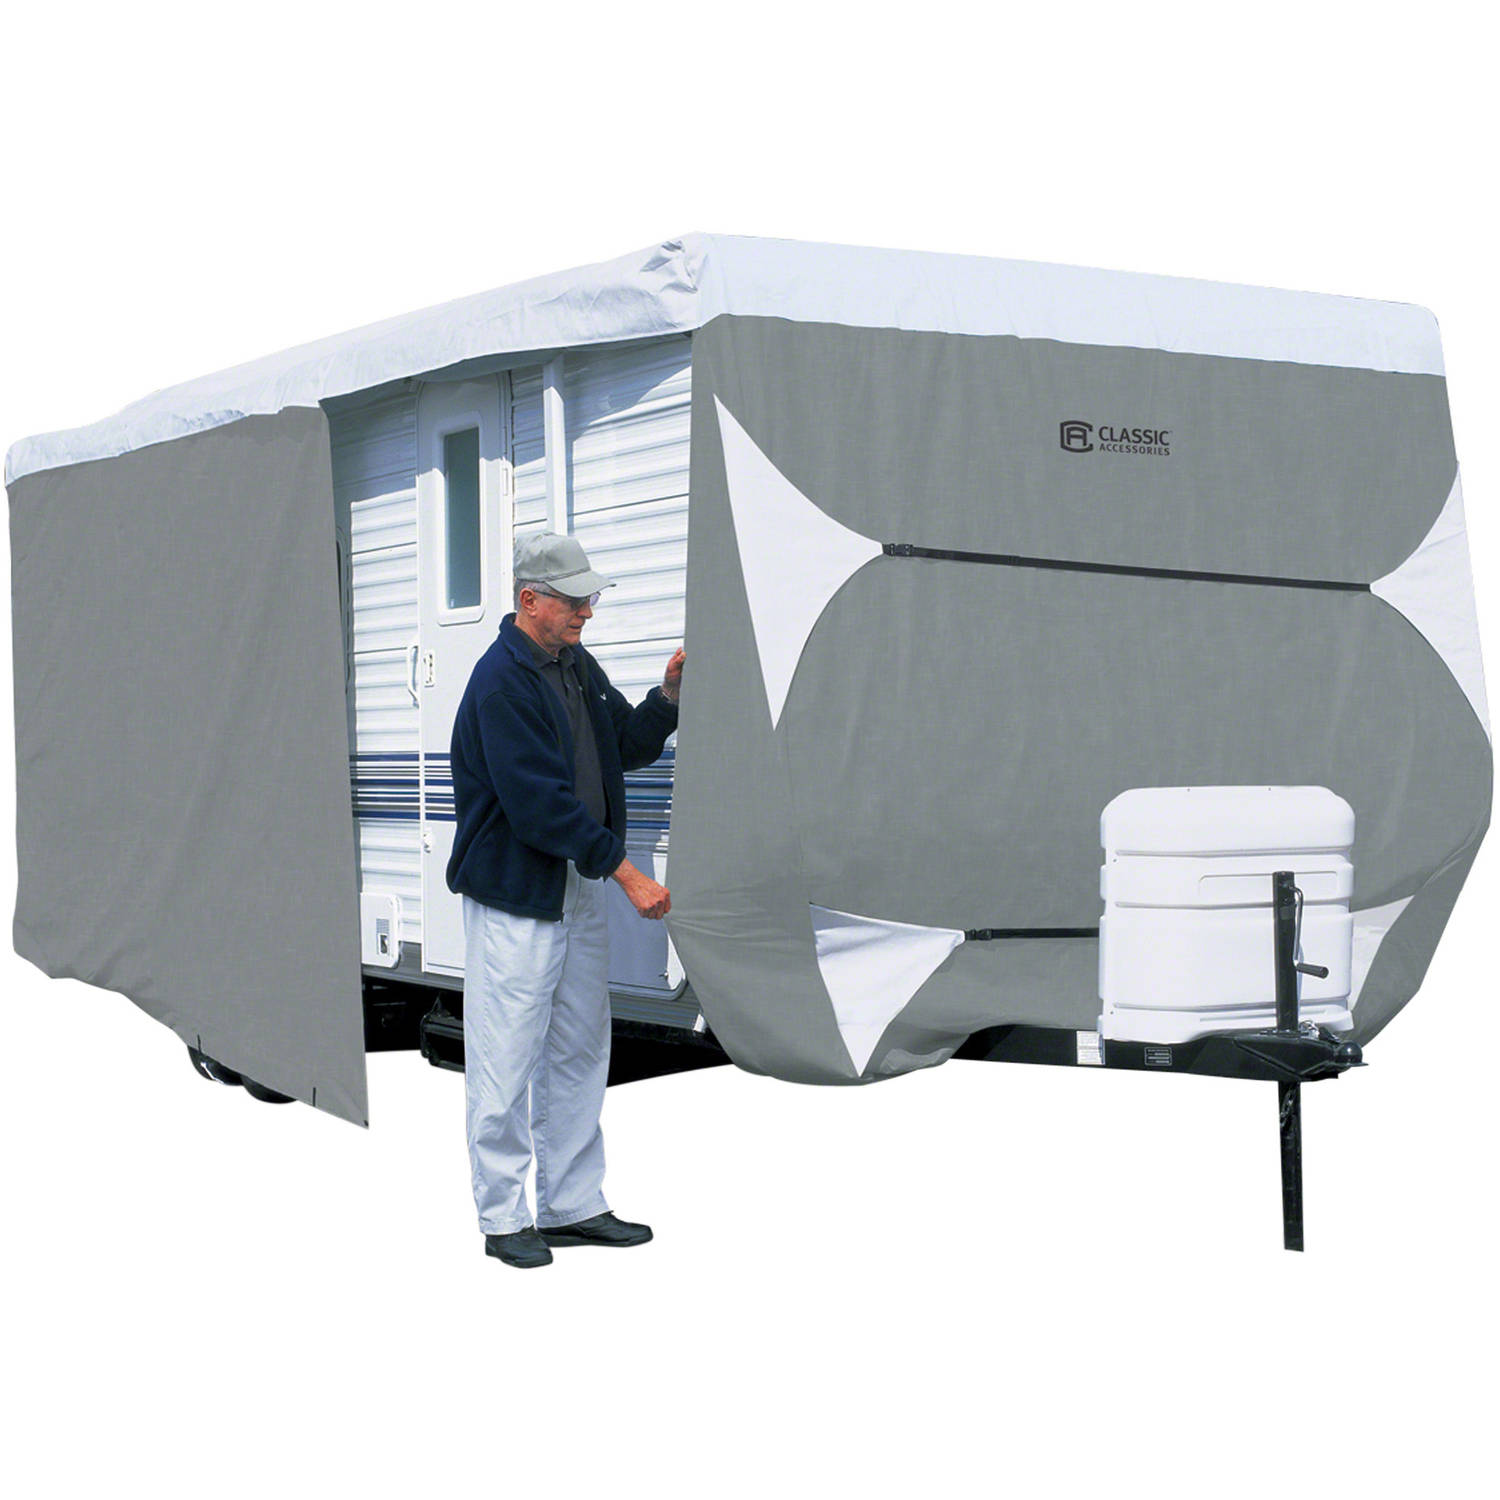 Classic Accessories PolyPRO 3 Deluxe Travel Trailer RV Cover or Toy Hauler RV Cover, Grey / Snow White